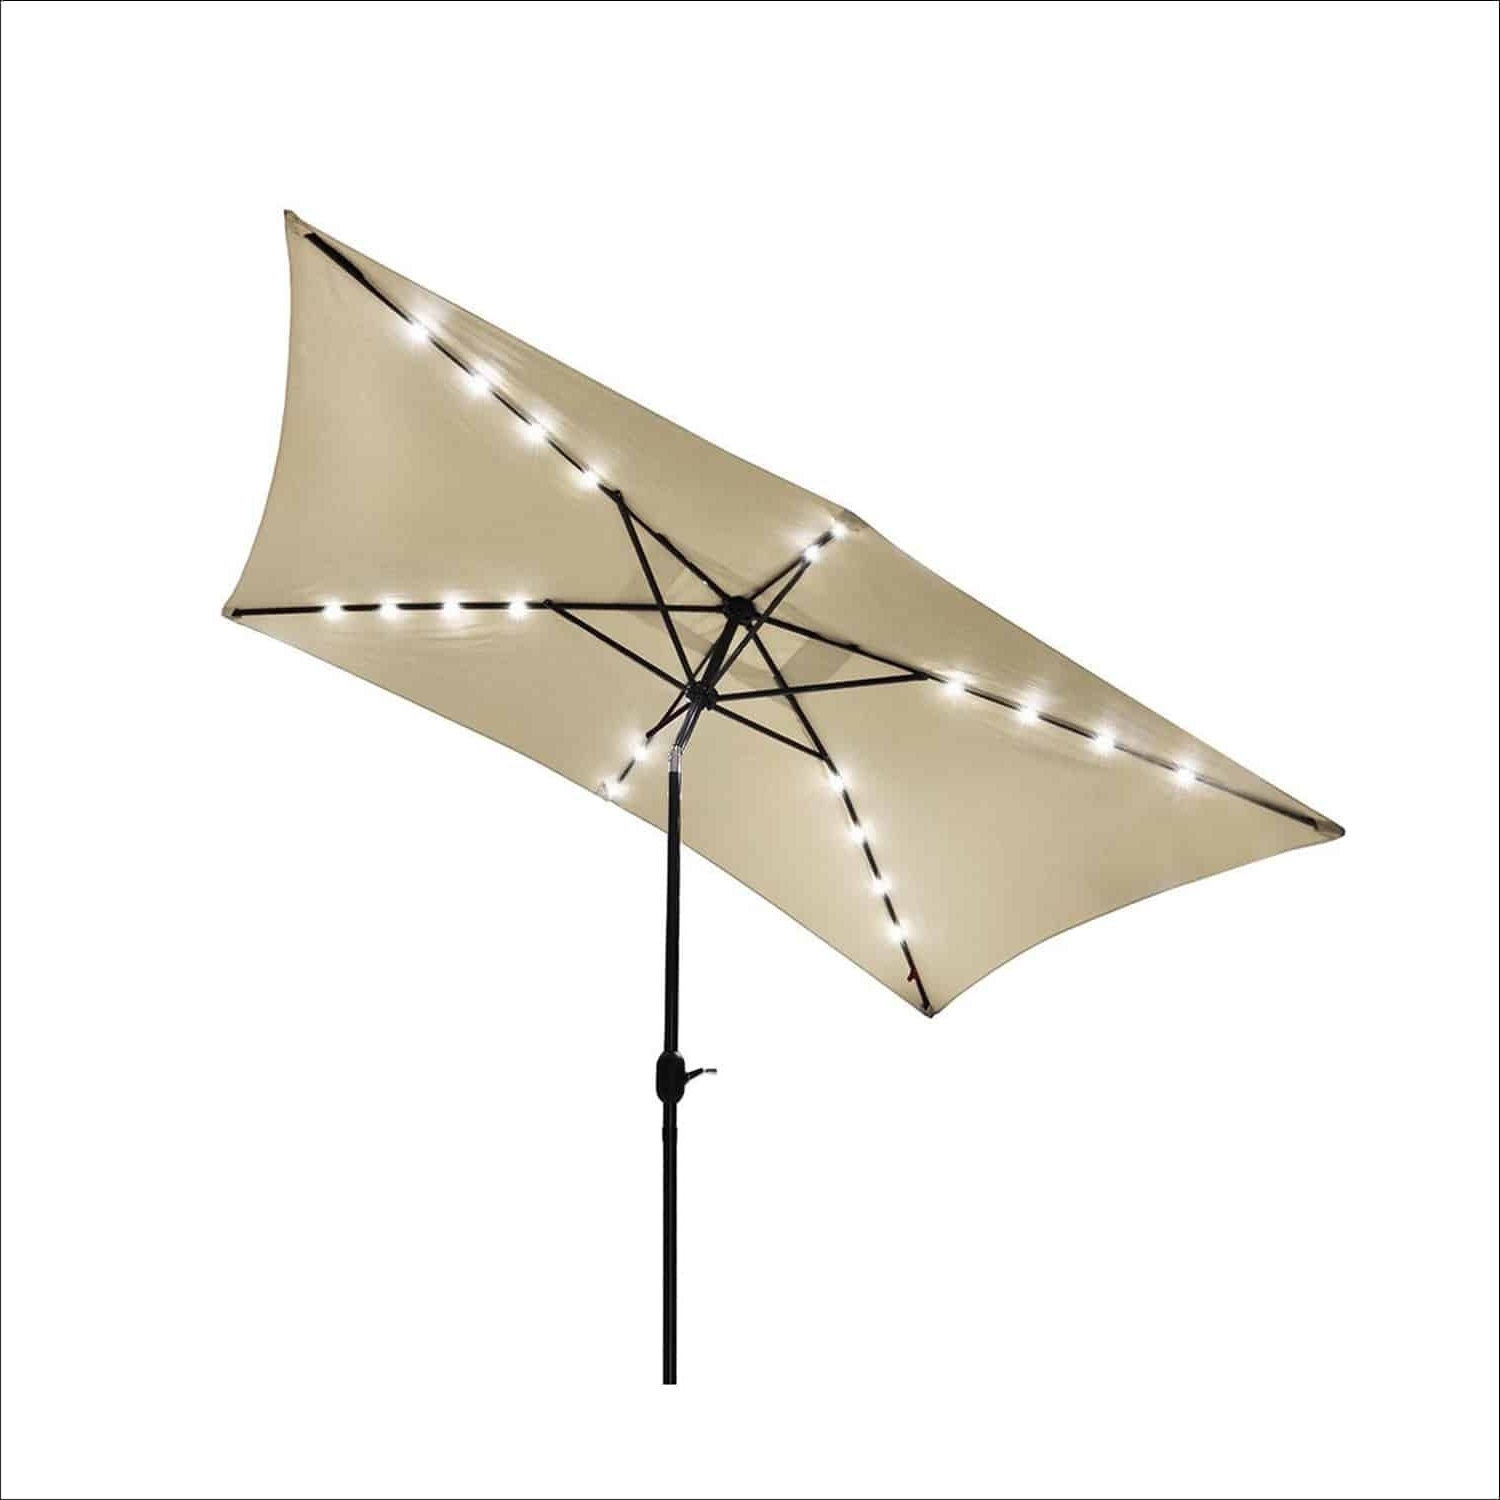 Yescom Patio Umbrellas For Favorite Yescom 10 X 6.5 Feet Rectangle Outdoor Patio Offset Umbrella (Gallery 6 of 20)